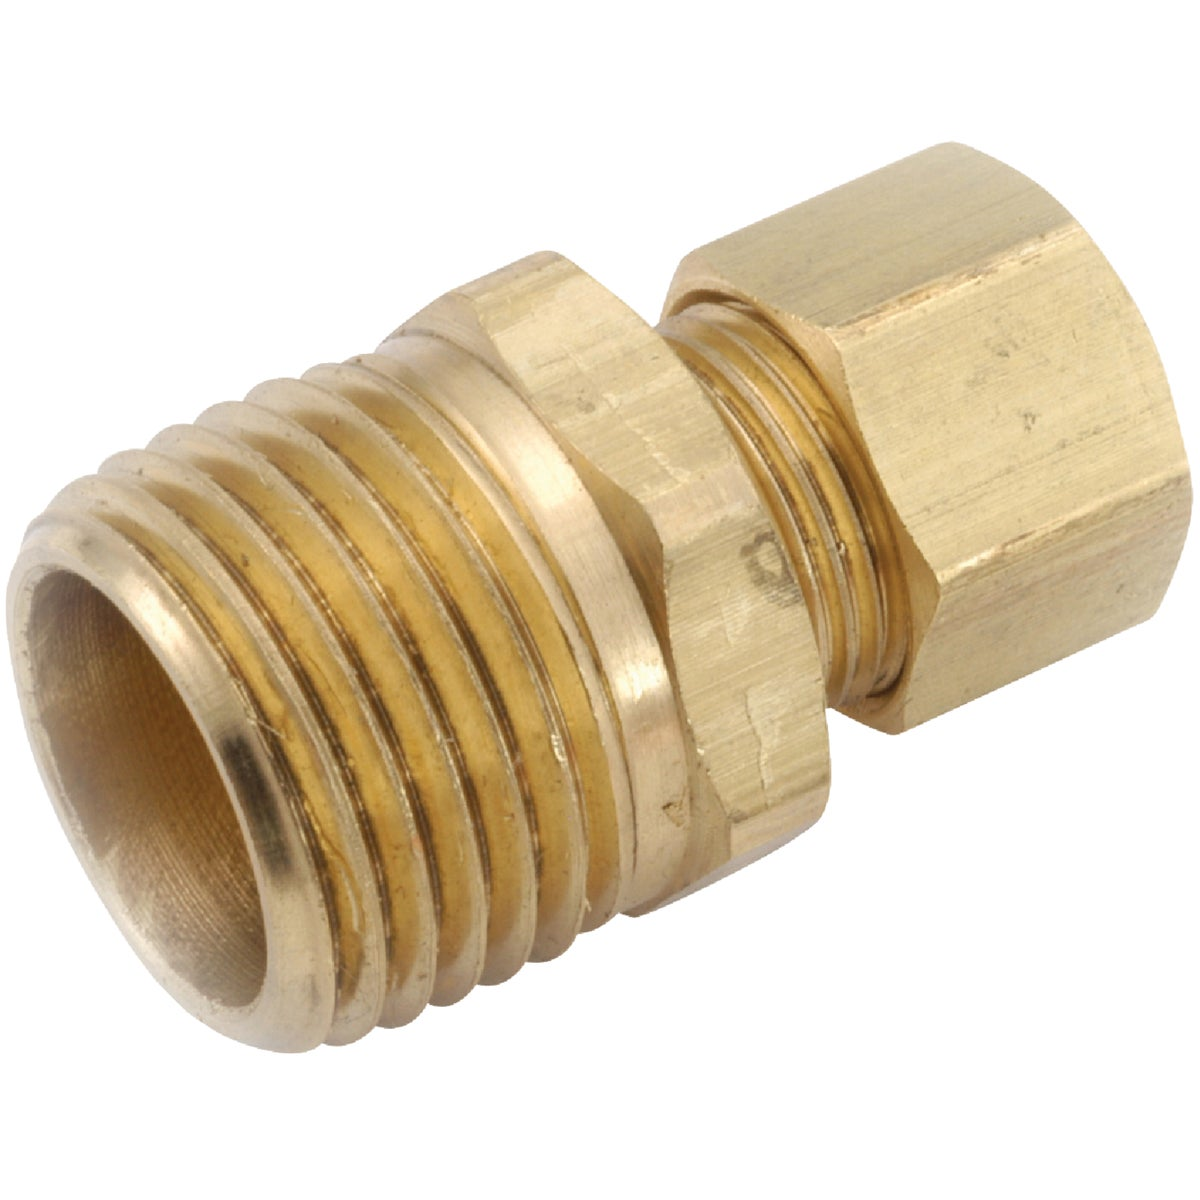 5/8X1/2 MALE CONNECTOR - 750068-1008 by Anderson Metals Corp